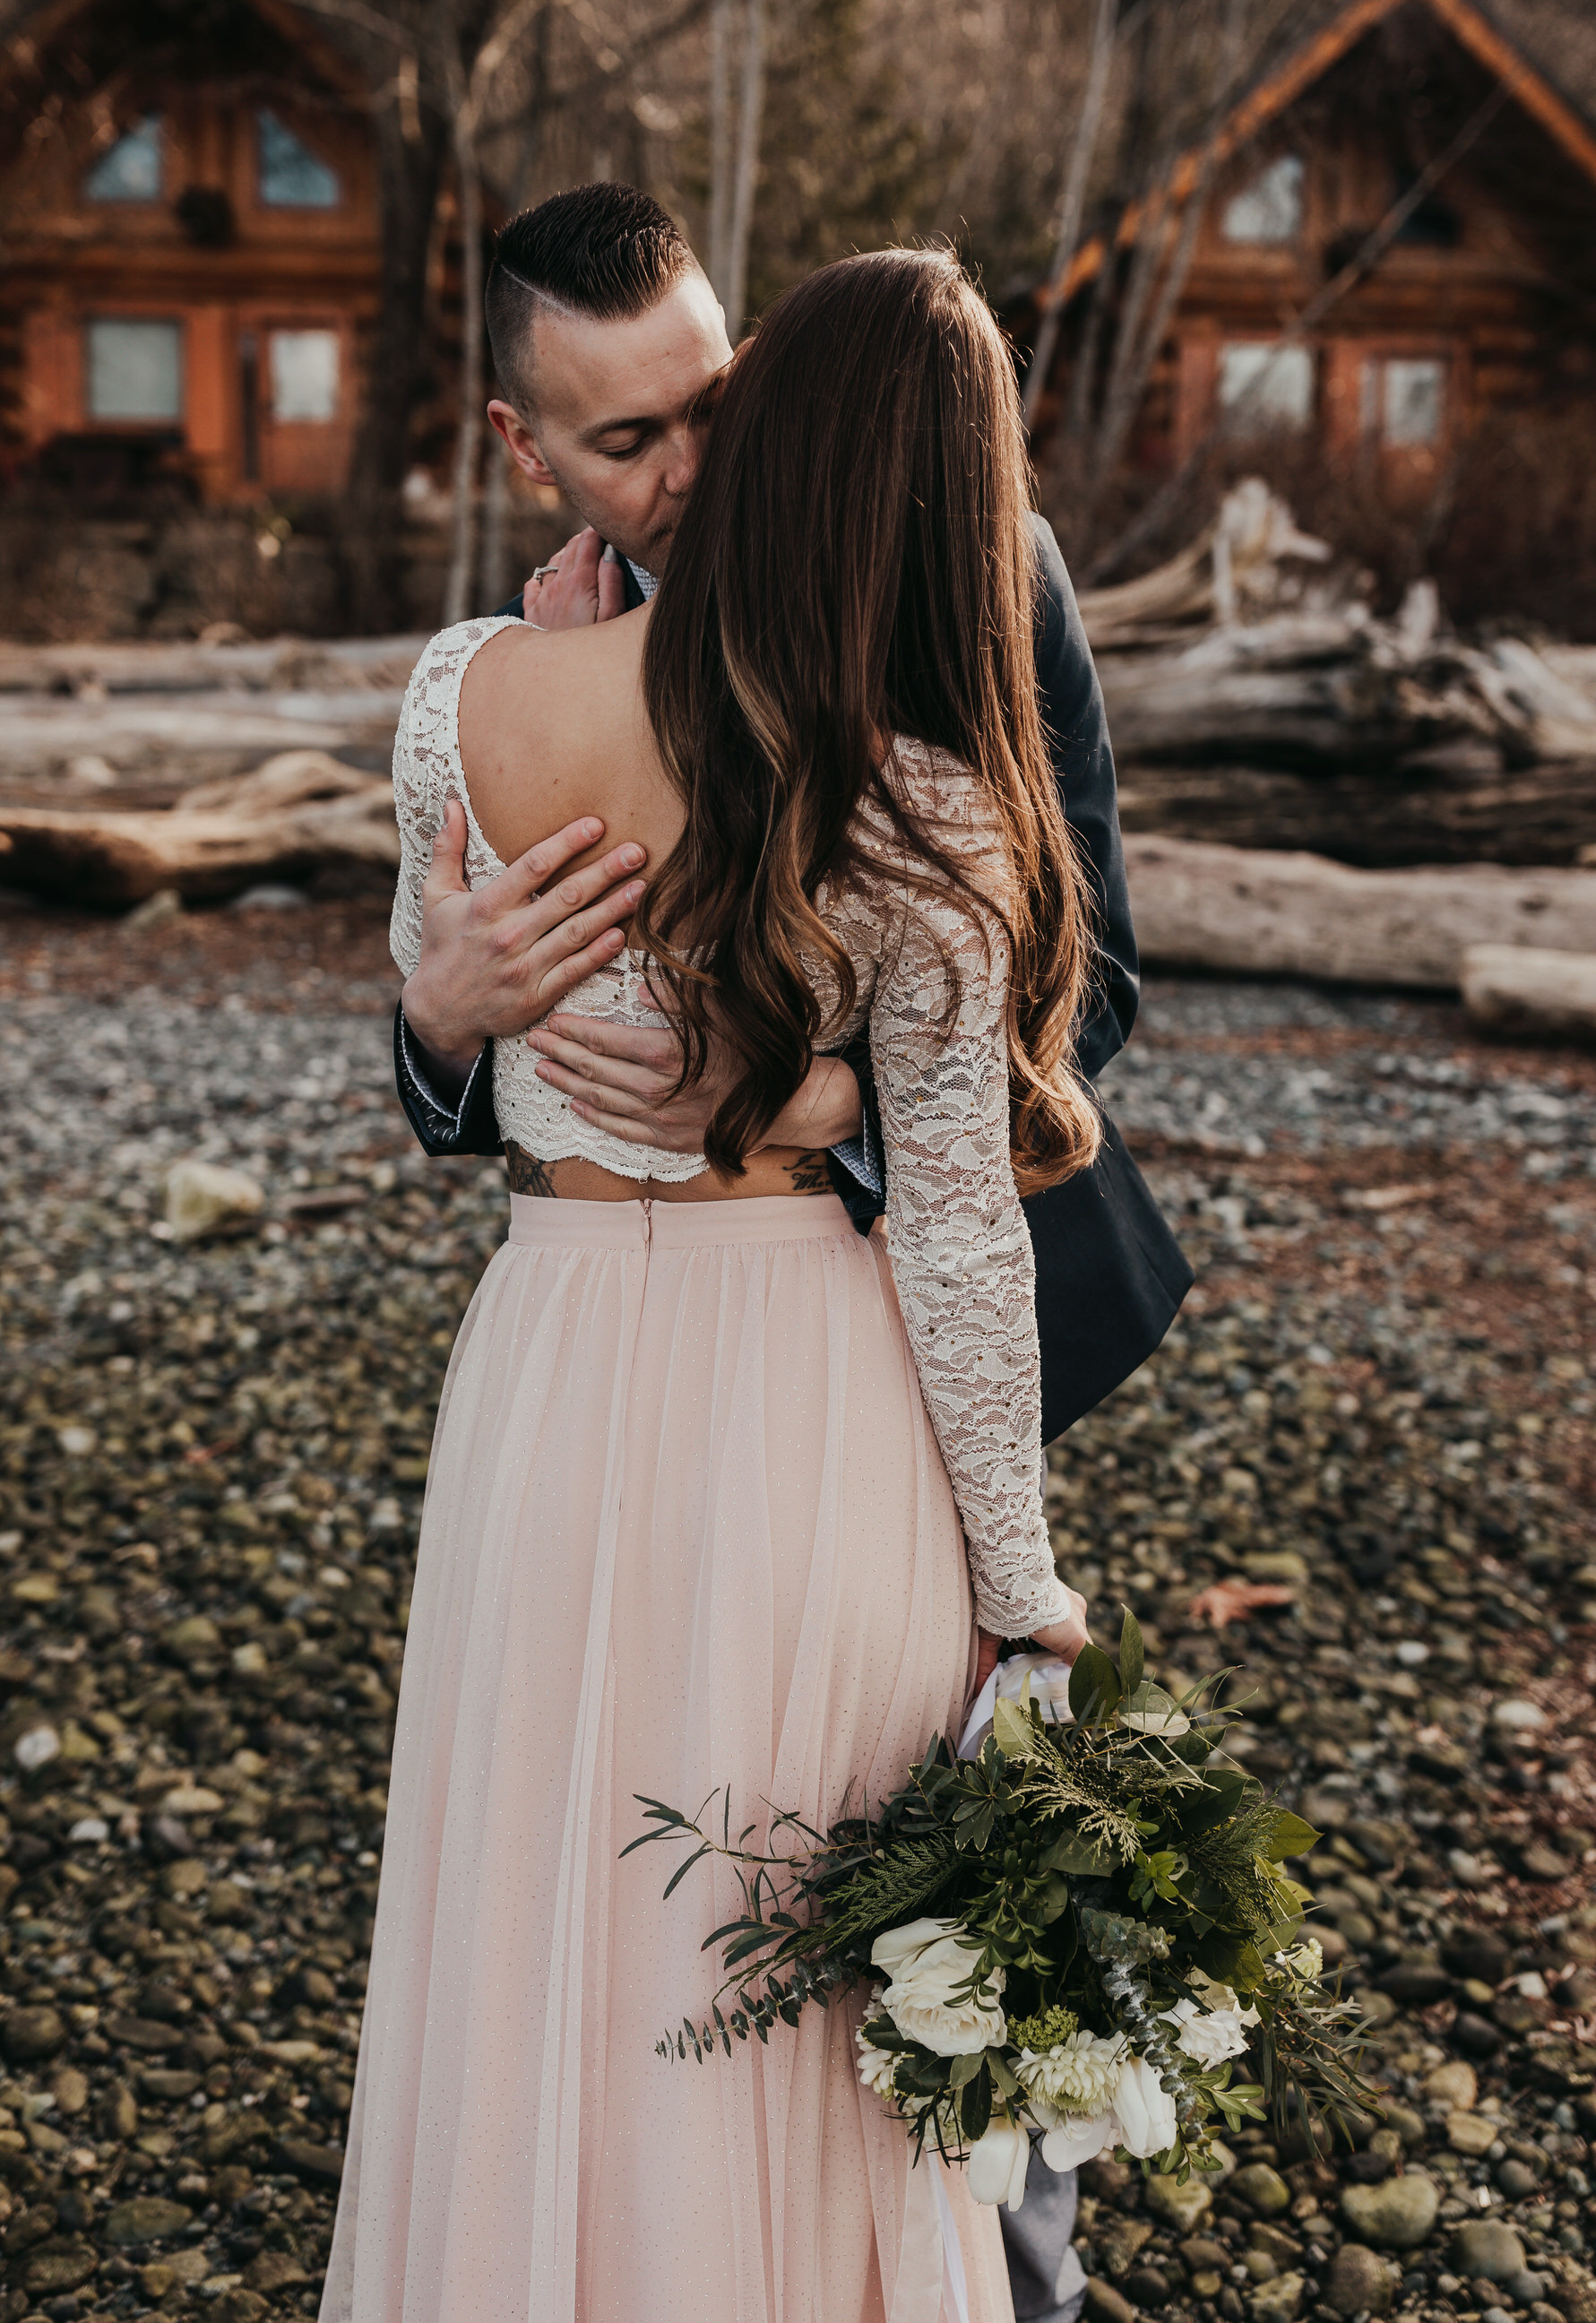 Squamish Engagement Photos - Porteau Cove Engagement Photos - Sunshine Coast Wedding Photographer - Vancouver Wedding Photographer - Squamish Wedding Photographer178.JPG